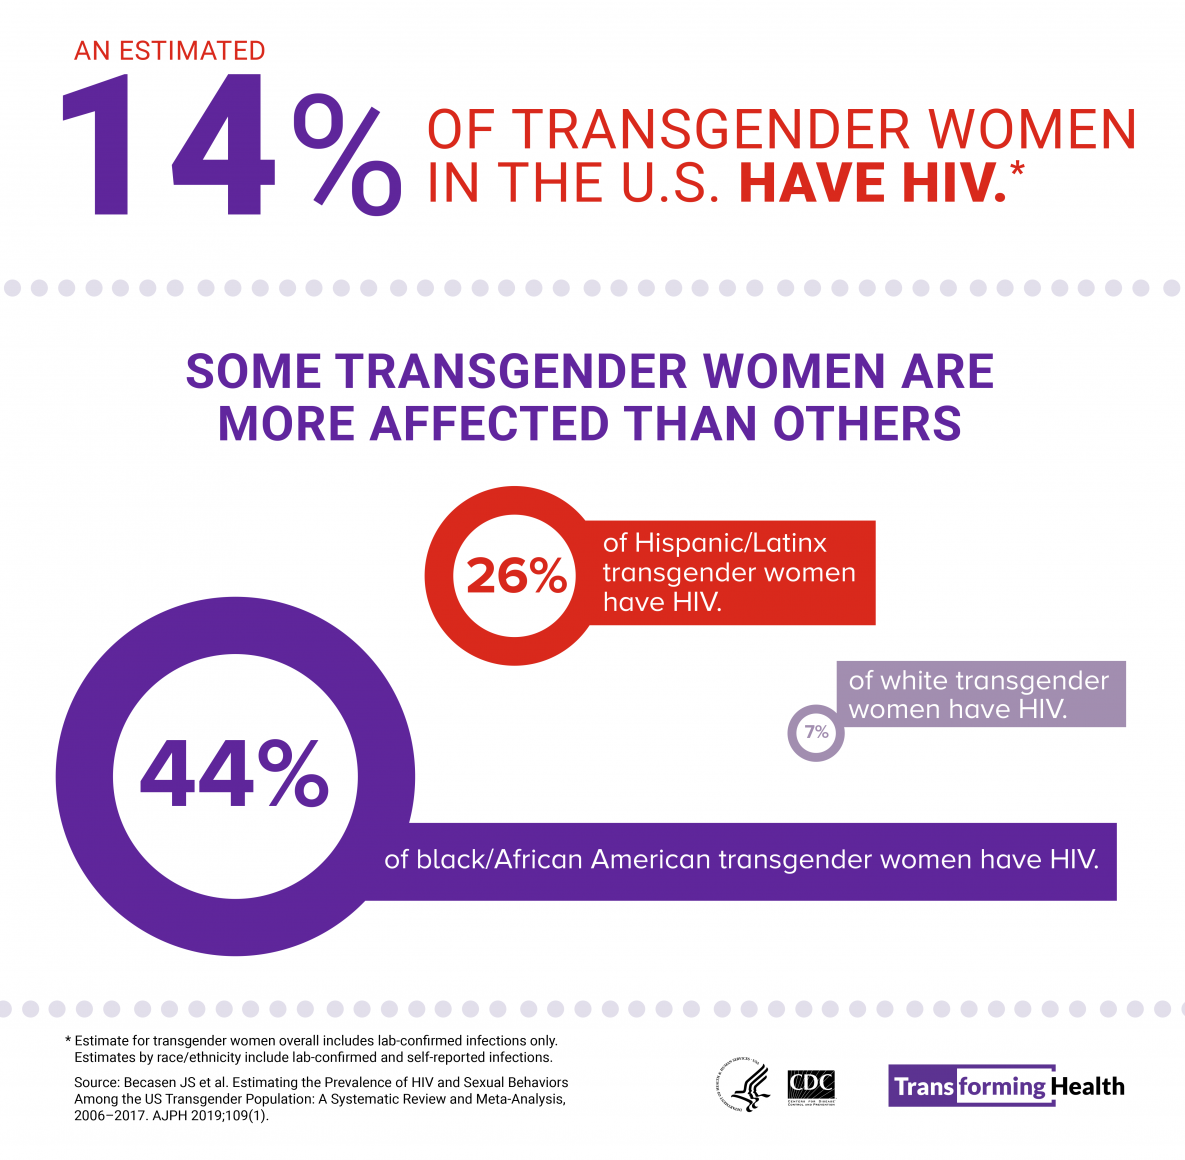 An estimated 14 percent of transgender women in the US have HIV (includes lab-confirmed infections only). By race/ethnicity, an estimated 44 percent of black/African American, 26 percent of Hispanic/Latina, and 7 percent of white transgender women have HIV (includes lab-confirmed and self-reported infections).